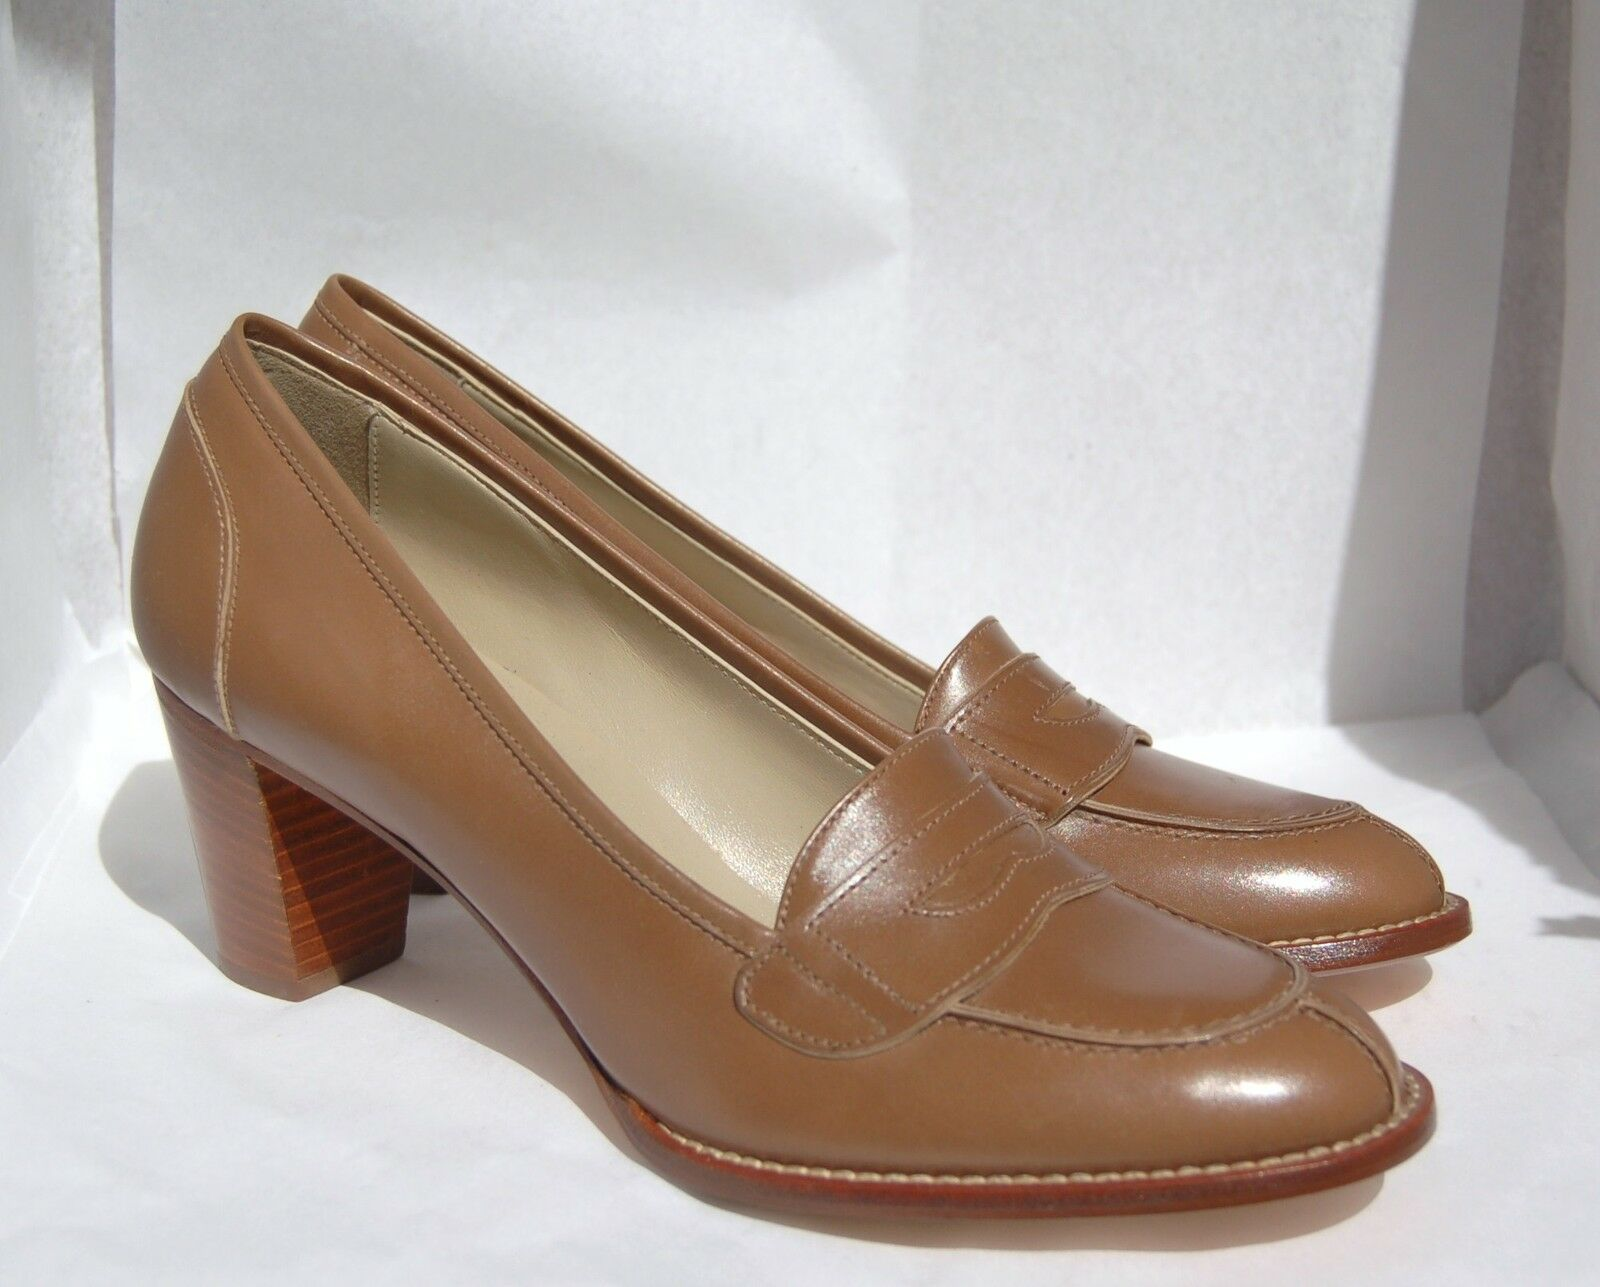 WOMAN - 40 - PENNY LOAFER - SOFTY CALF TAUPE - LEATHER SOLE - HEEL 7cm - LINING